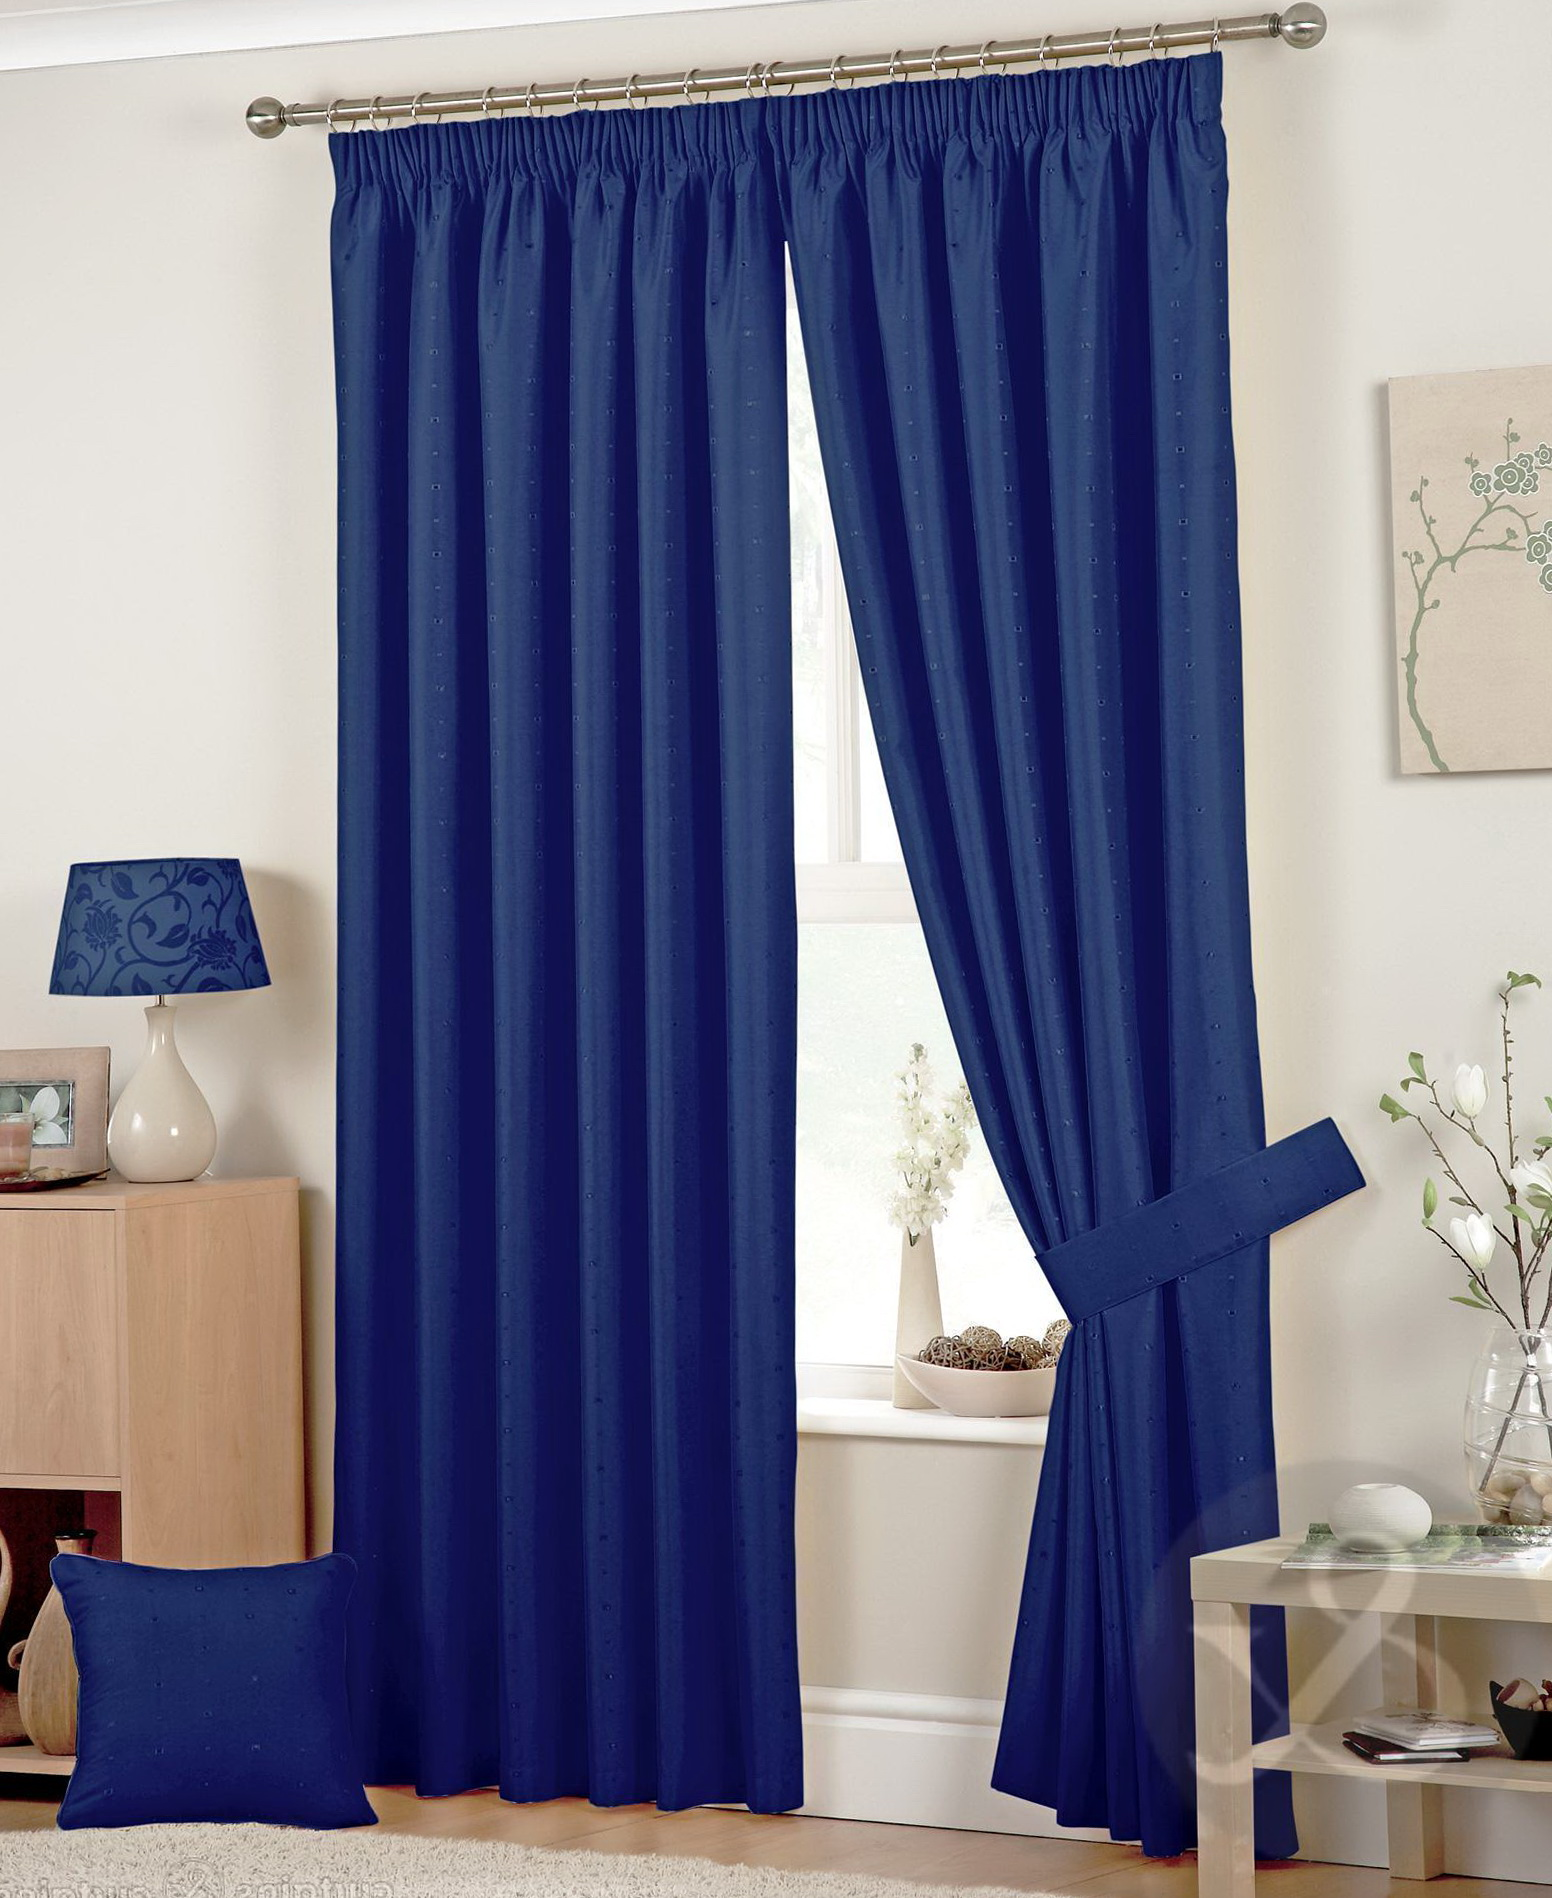 navy blue and brown curtains home design ideas. Black Bedroom Furniture Sets. Home Design Ideas